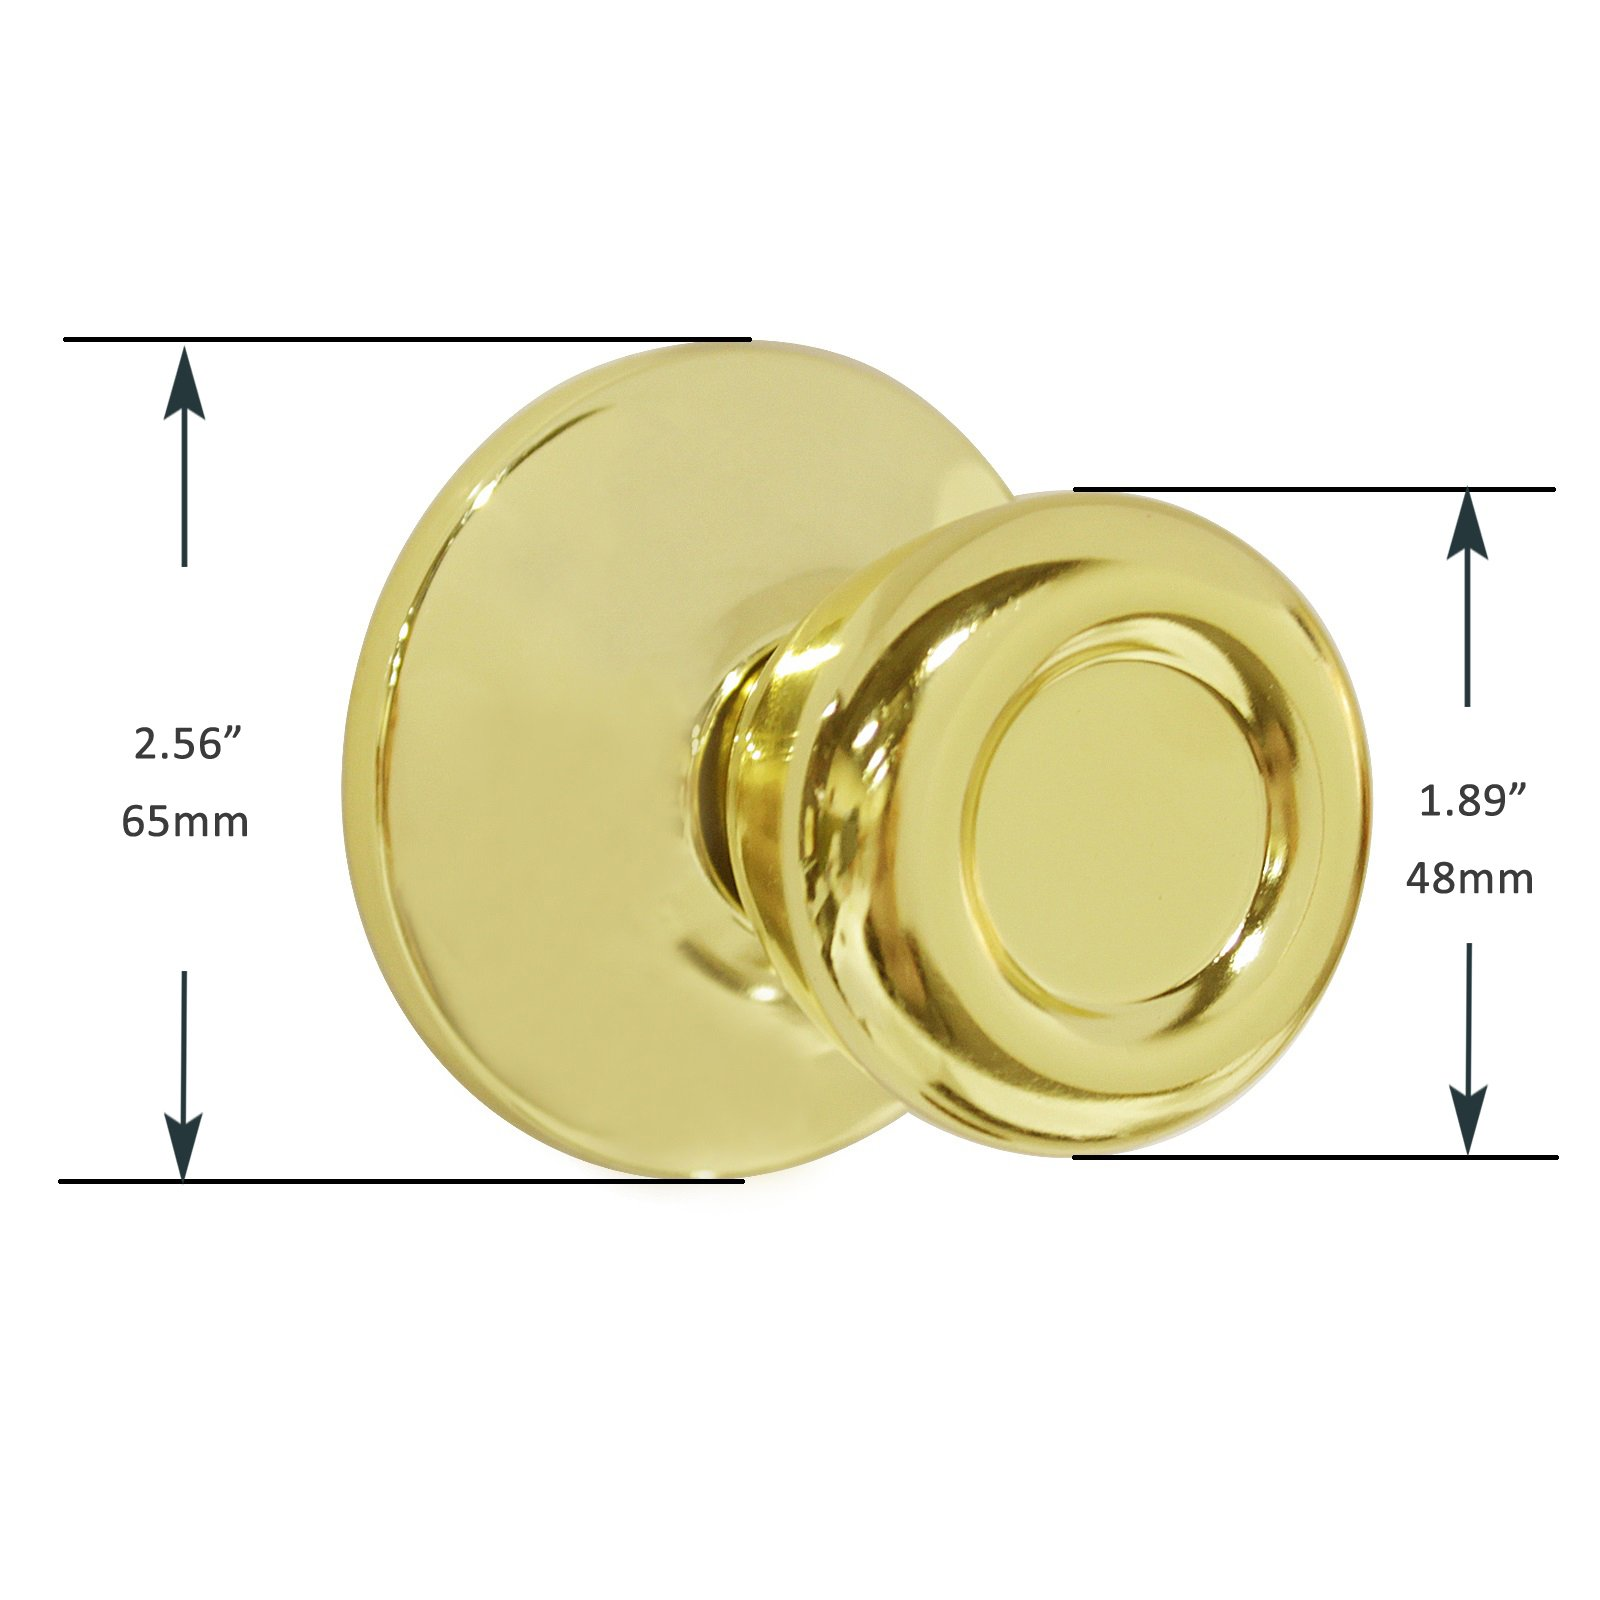 Dummy Interior Door Knob Set Tulip Shape Handles Decorative Inactive Trim Knob for Right or Left Handed Door , Polished Brass by home improvement direct (Image #3)